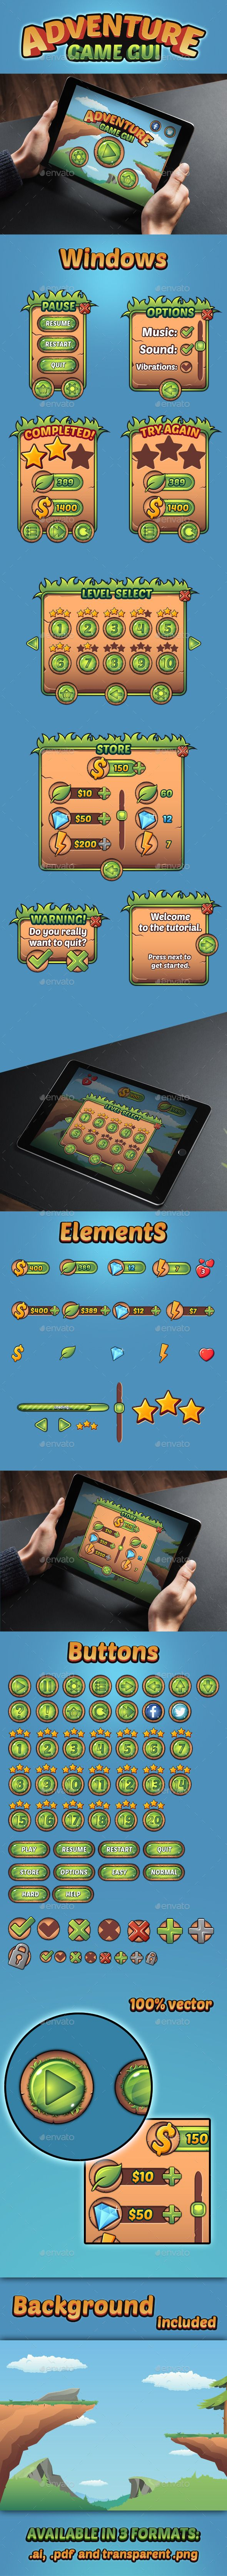 Adventure Game GUI - User Interfaces #Game #Assets | Download http://graphicriver.net/item/adventure-game-gui/11051082?ref=sinzo